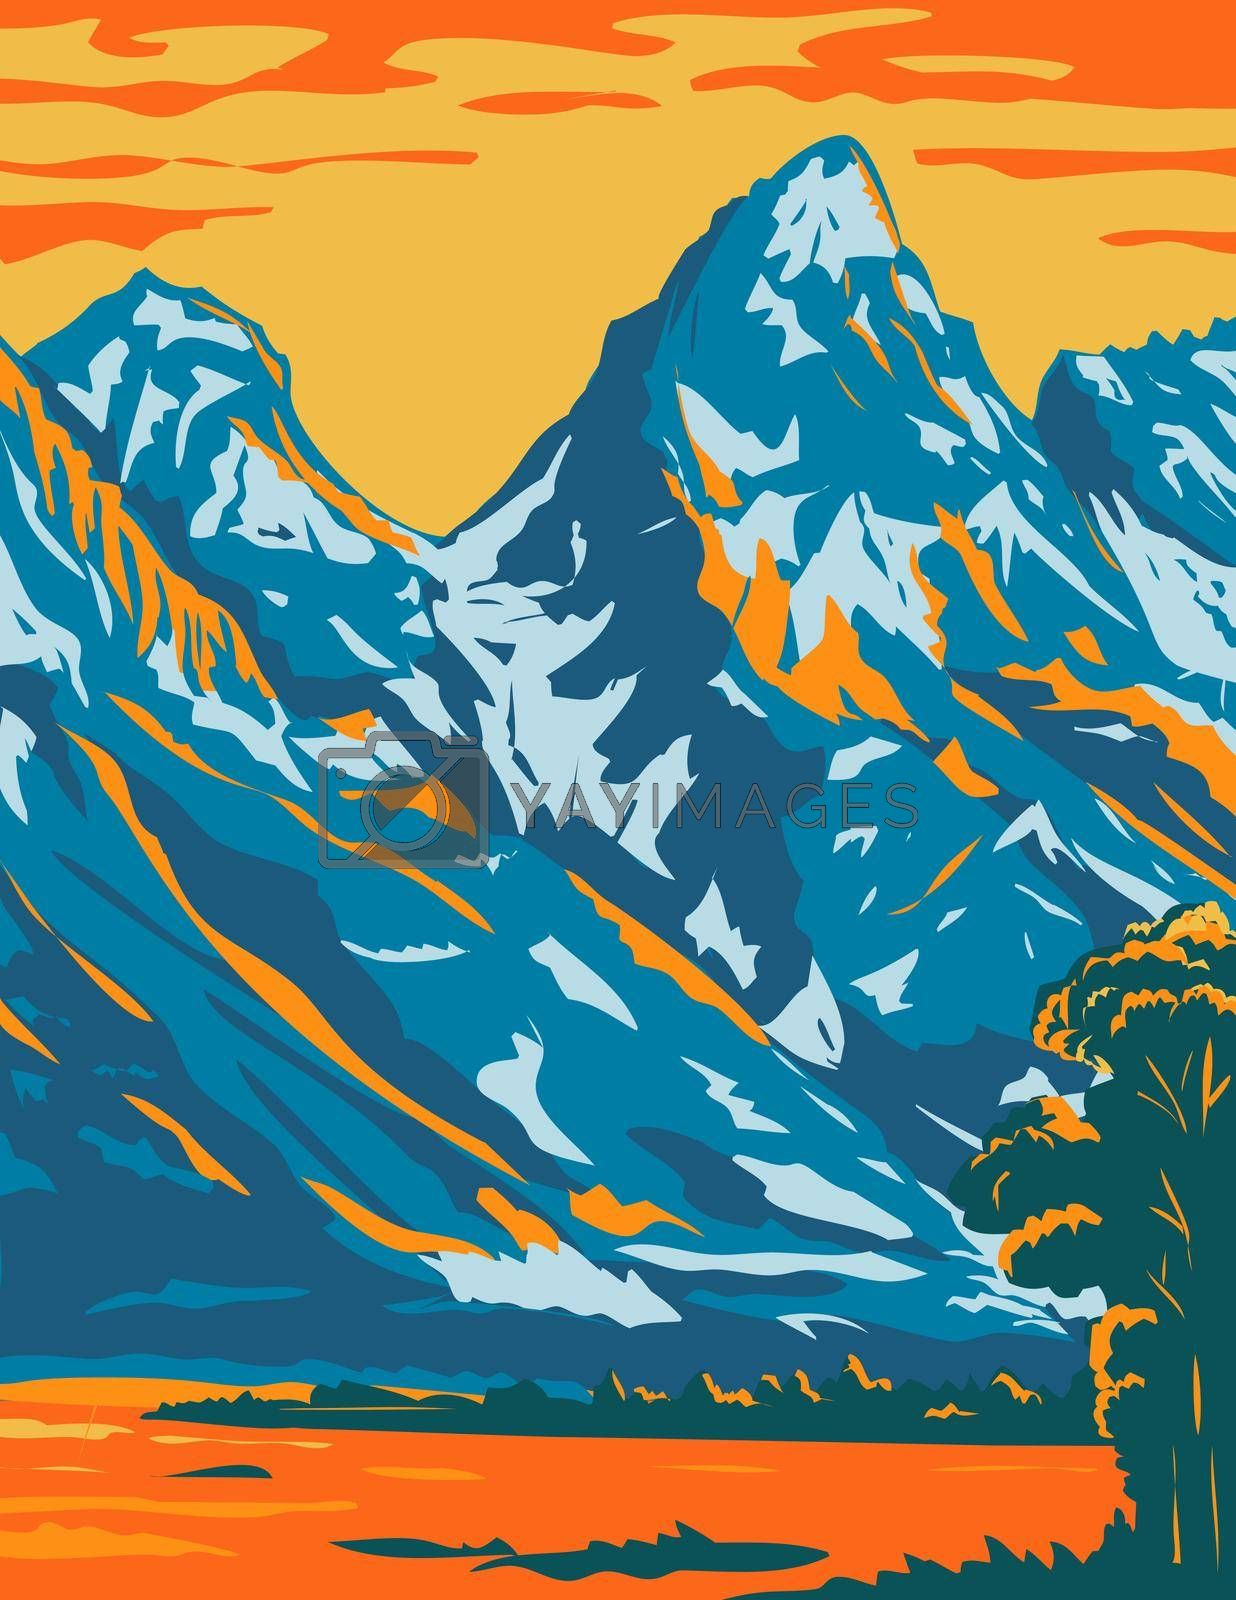 WPA poster art of the spectacular snowcapped peaks of Grand Teton National Park located in Wyoming United States of America done in works project administration or federal art project style.